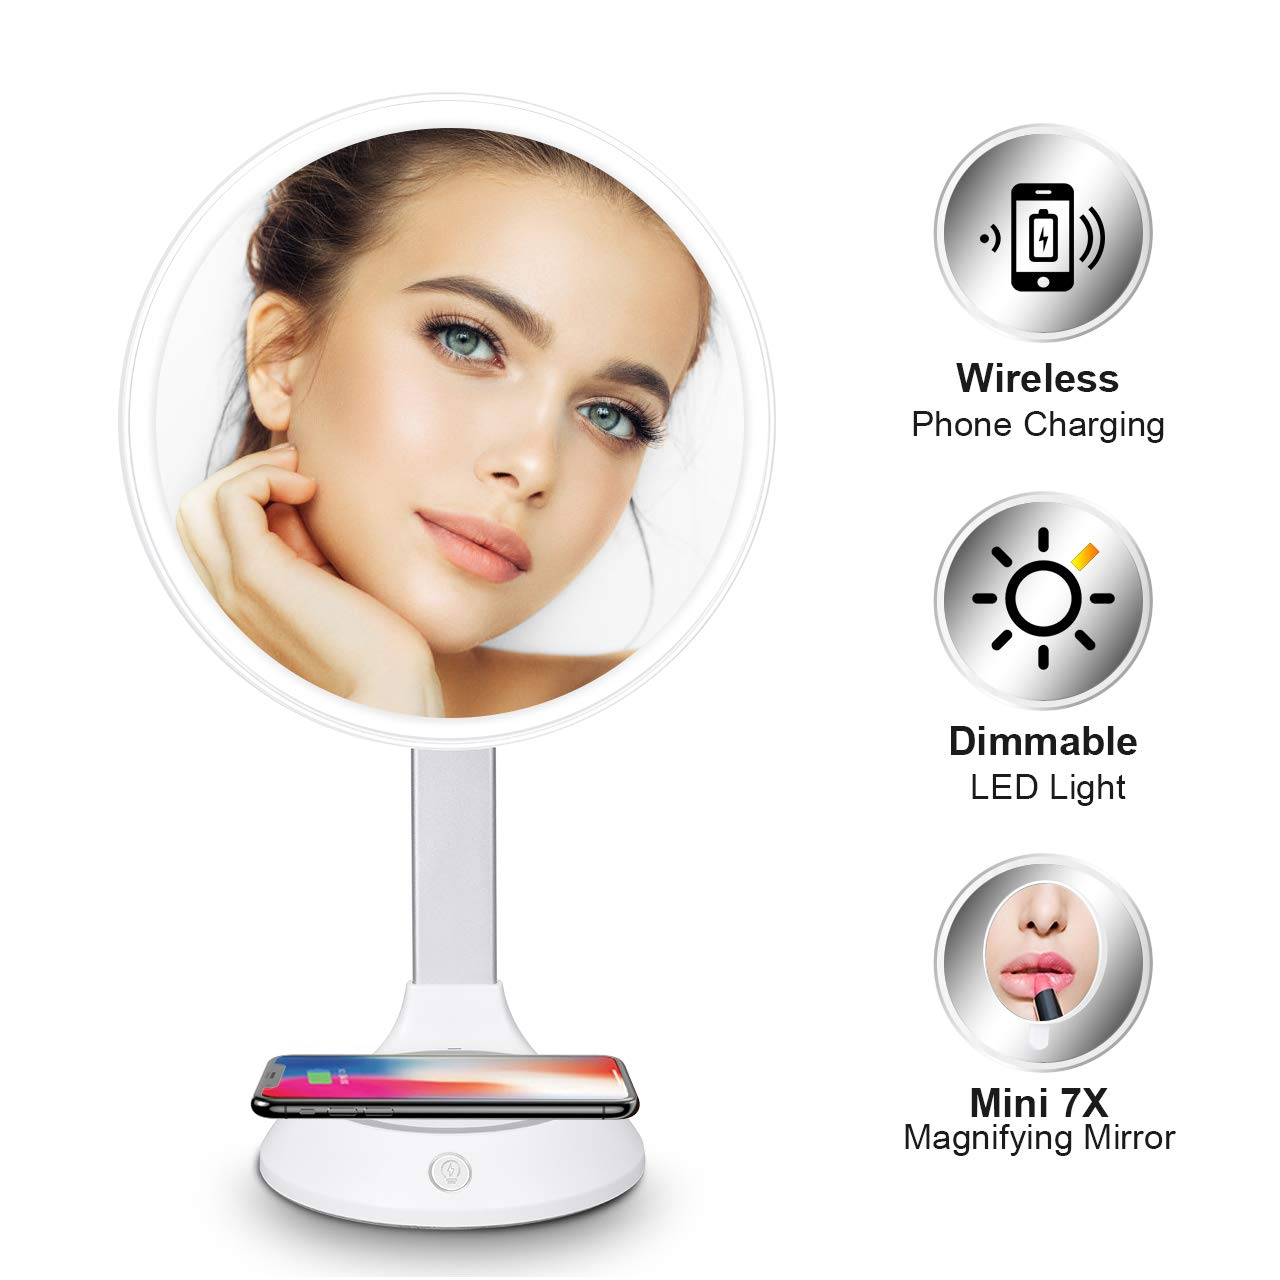 Lighted Makeup Mirror - with Wireless Phone Charger, 9'' Dimmable LED Makeup Mirror, Detachable 7x Magnifying Makeup Mirror, Adjustable Lighted Makeup Mirror with Magnification for Tabletop Bathroom